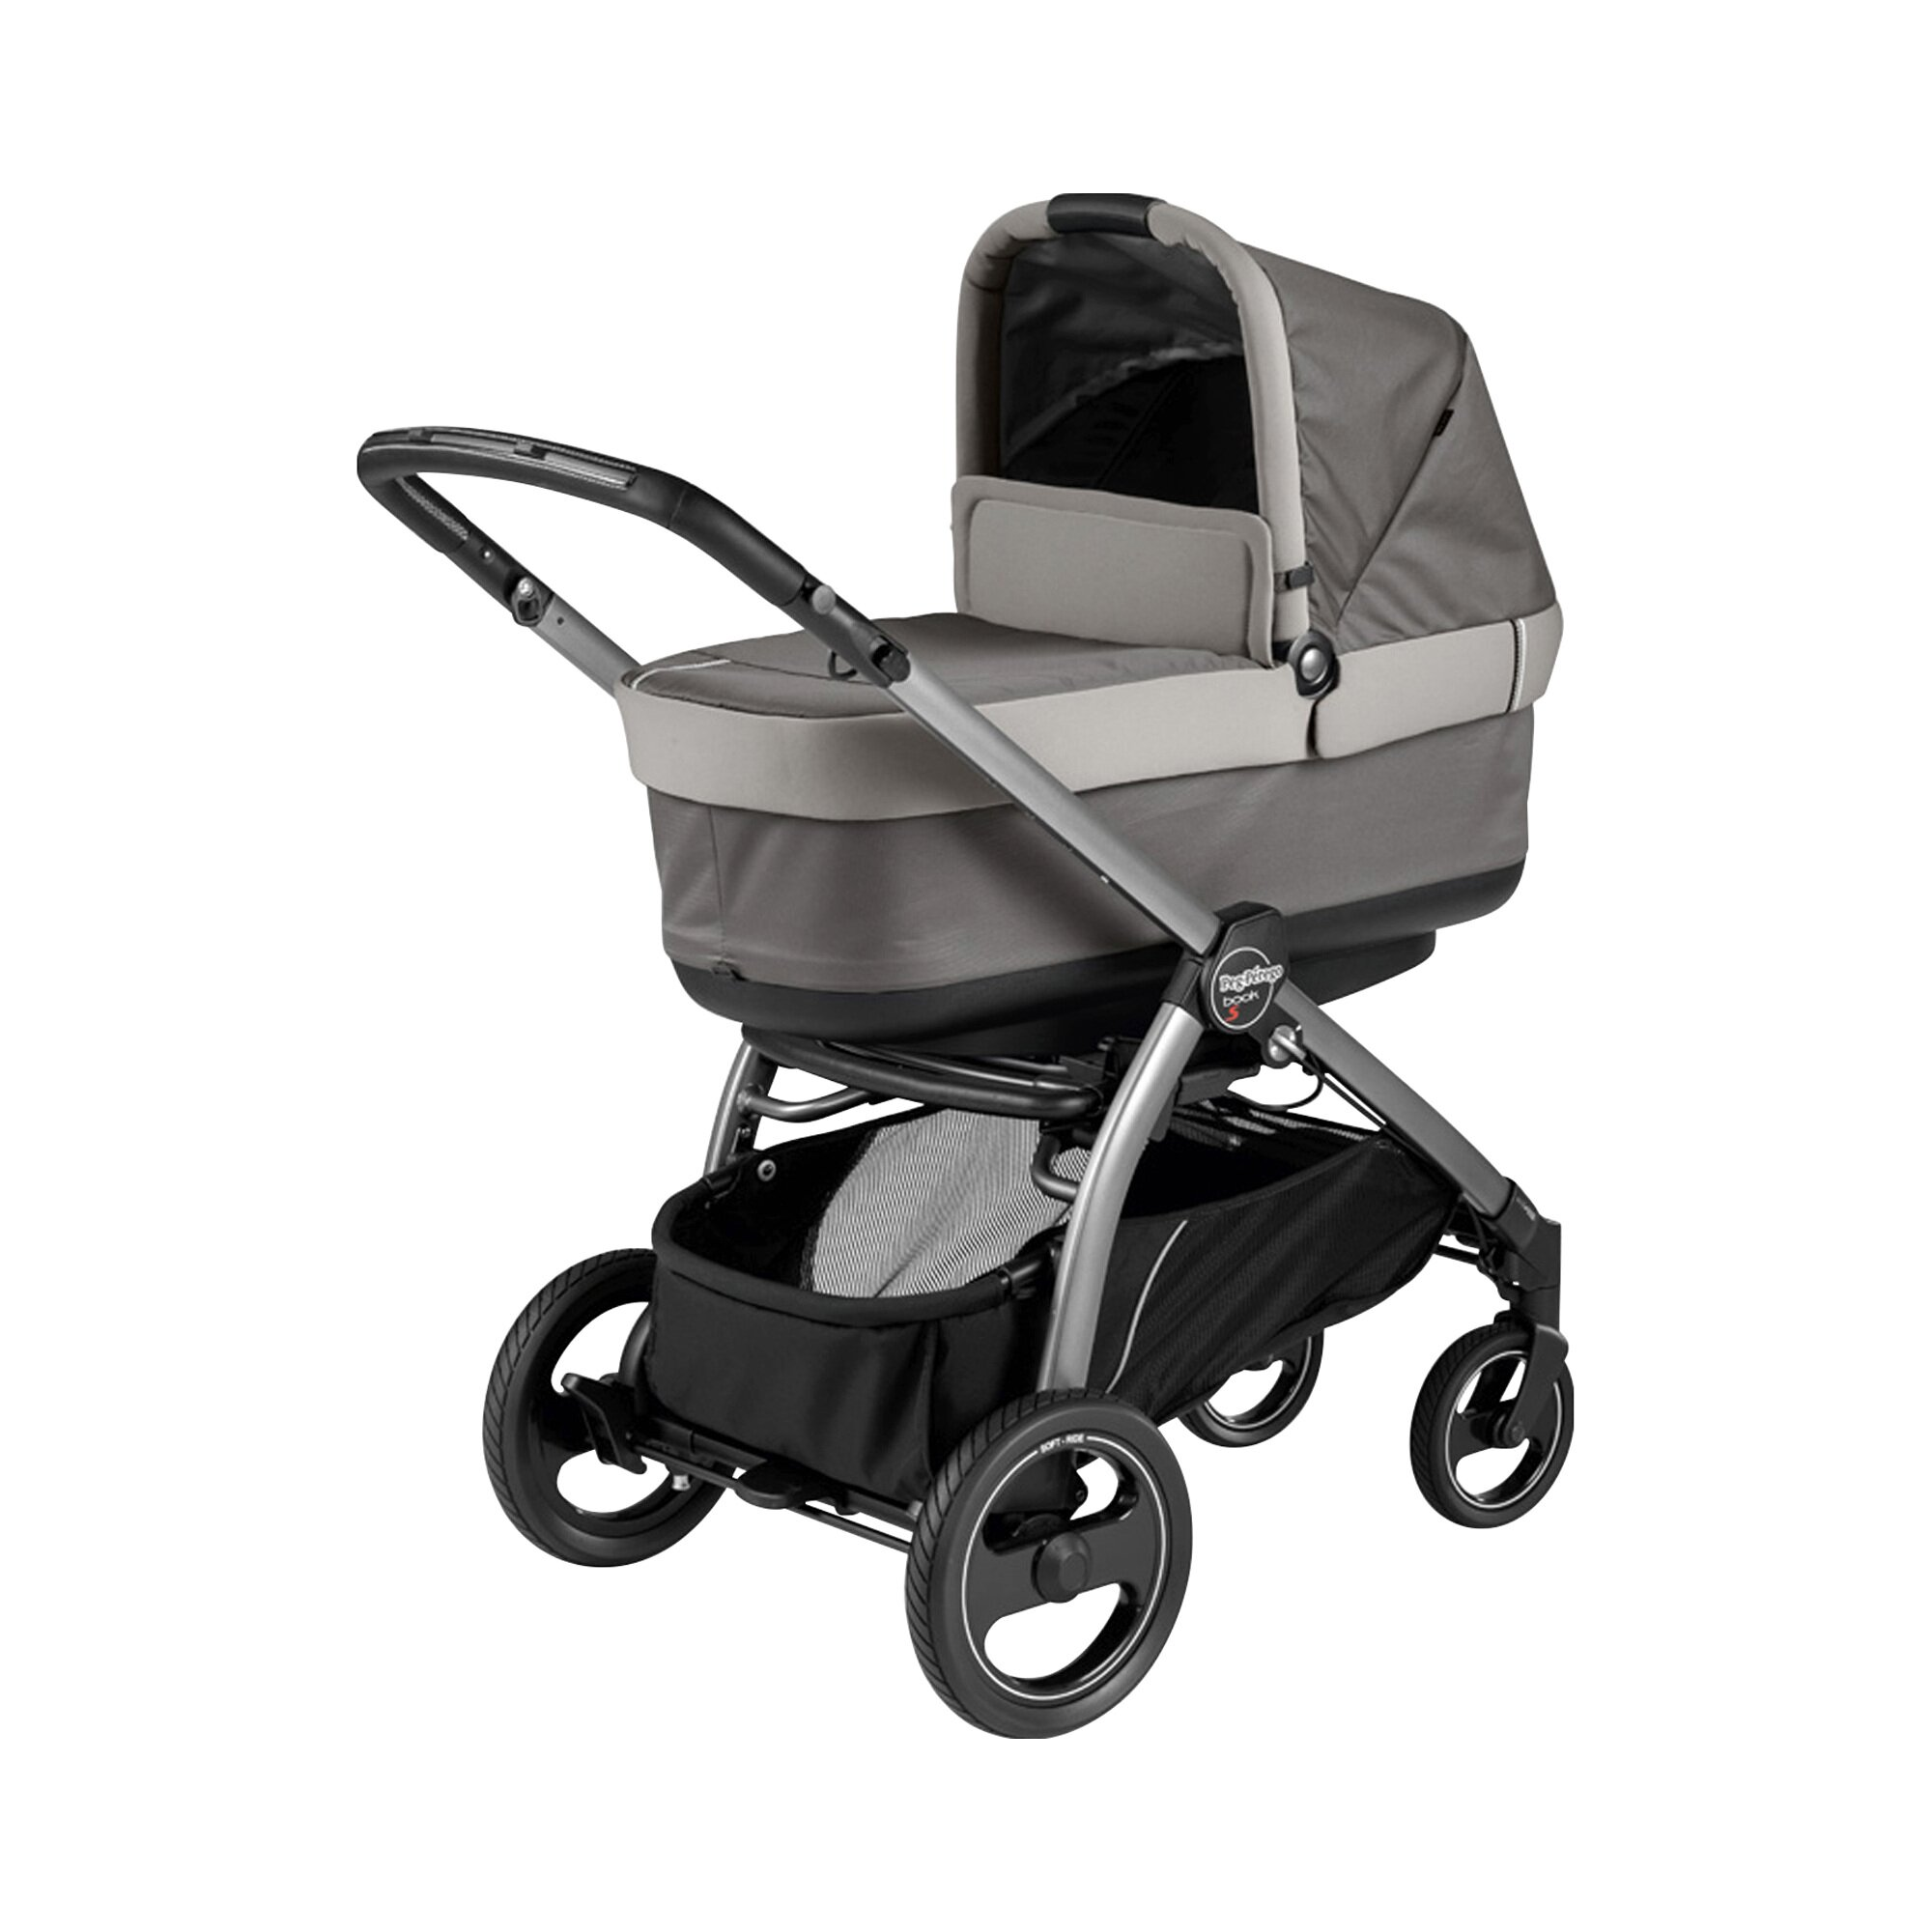 peg-perego-book-s-pop-up-kombikinderwagen-grau